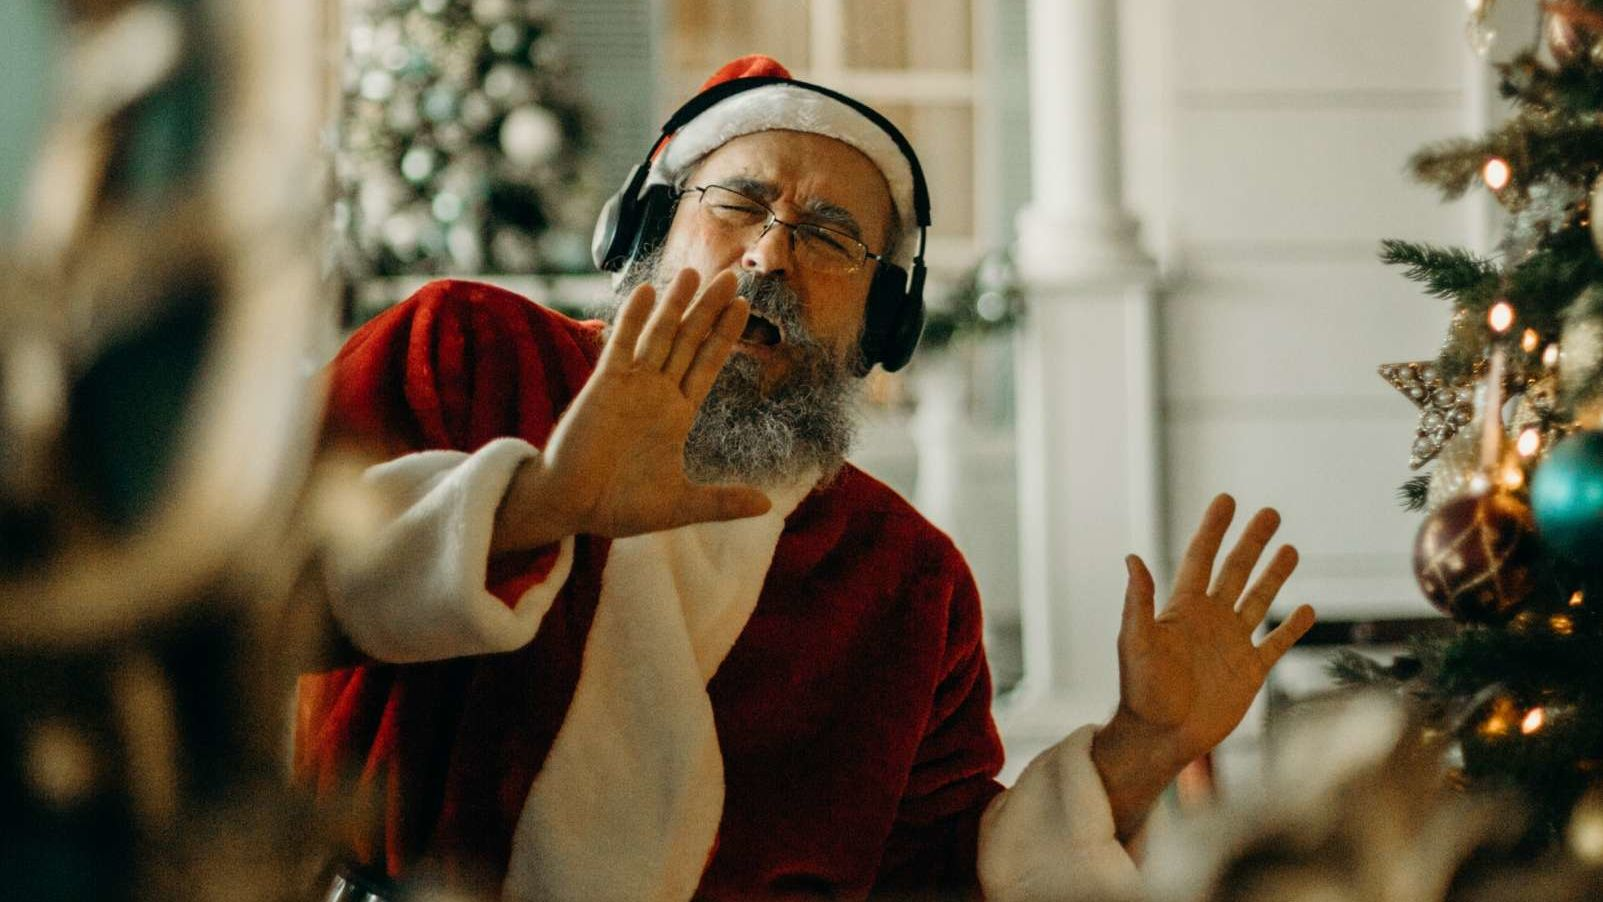 Radio Stations Playing Christmas Music Early in 2020